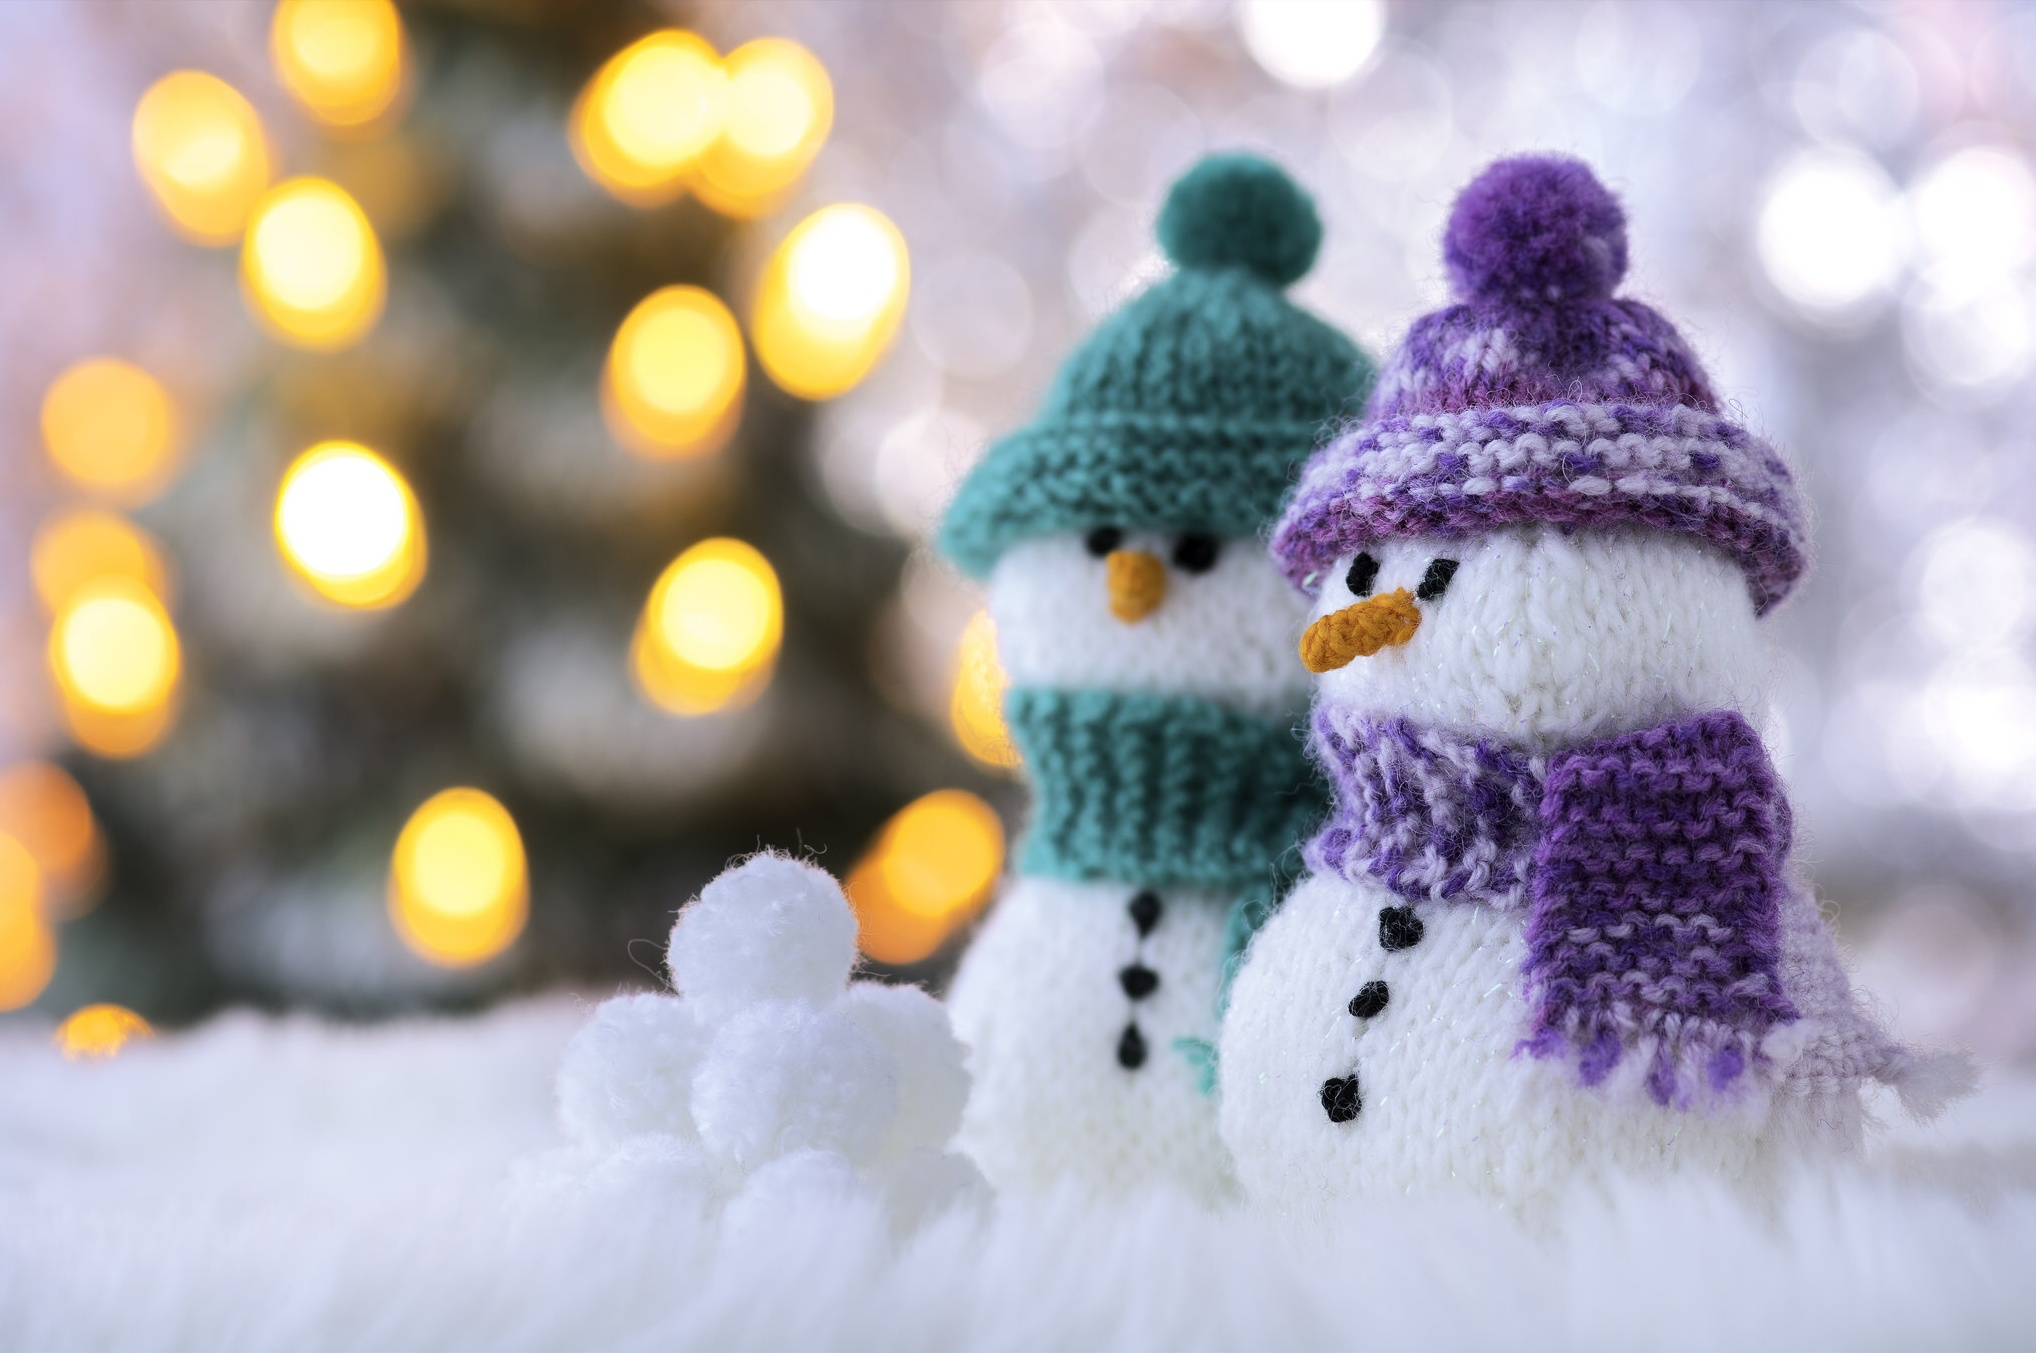 images of knit winter wallpaper sc